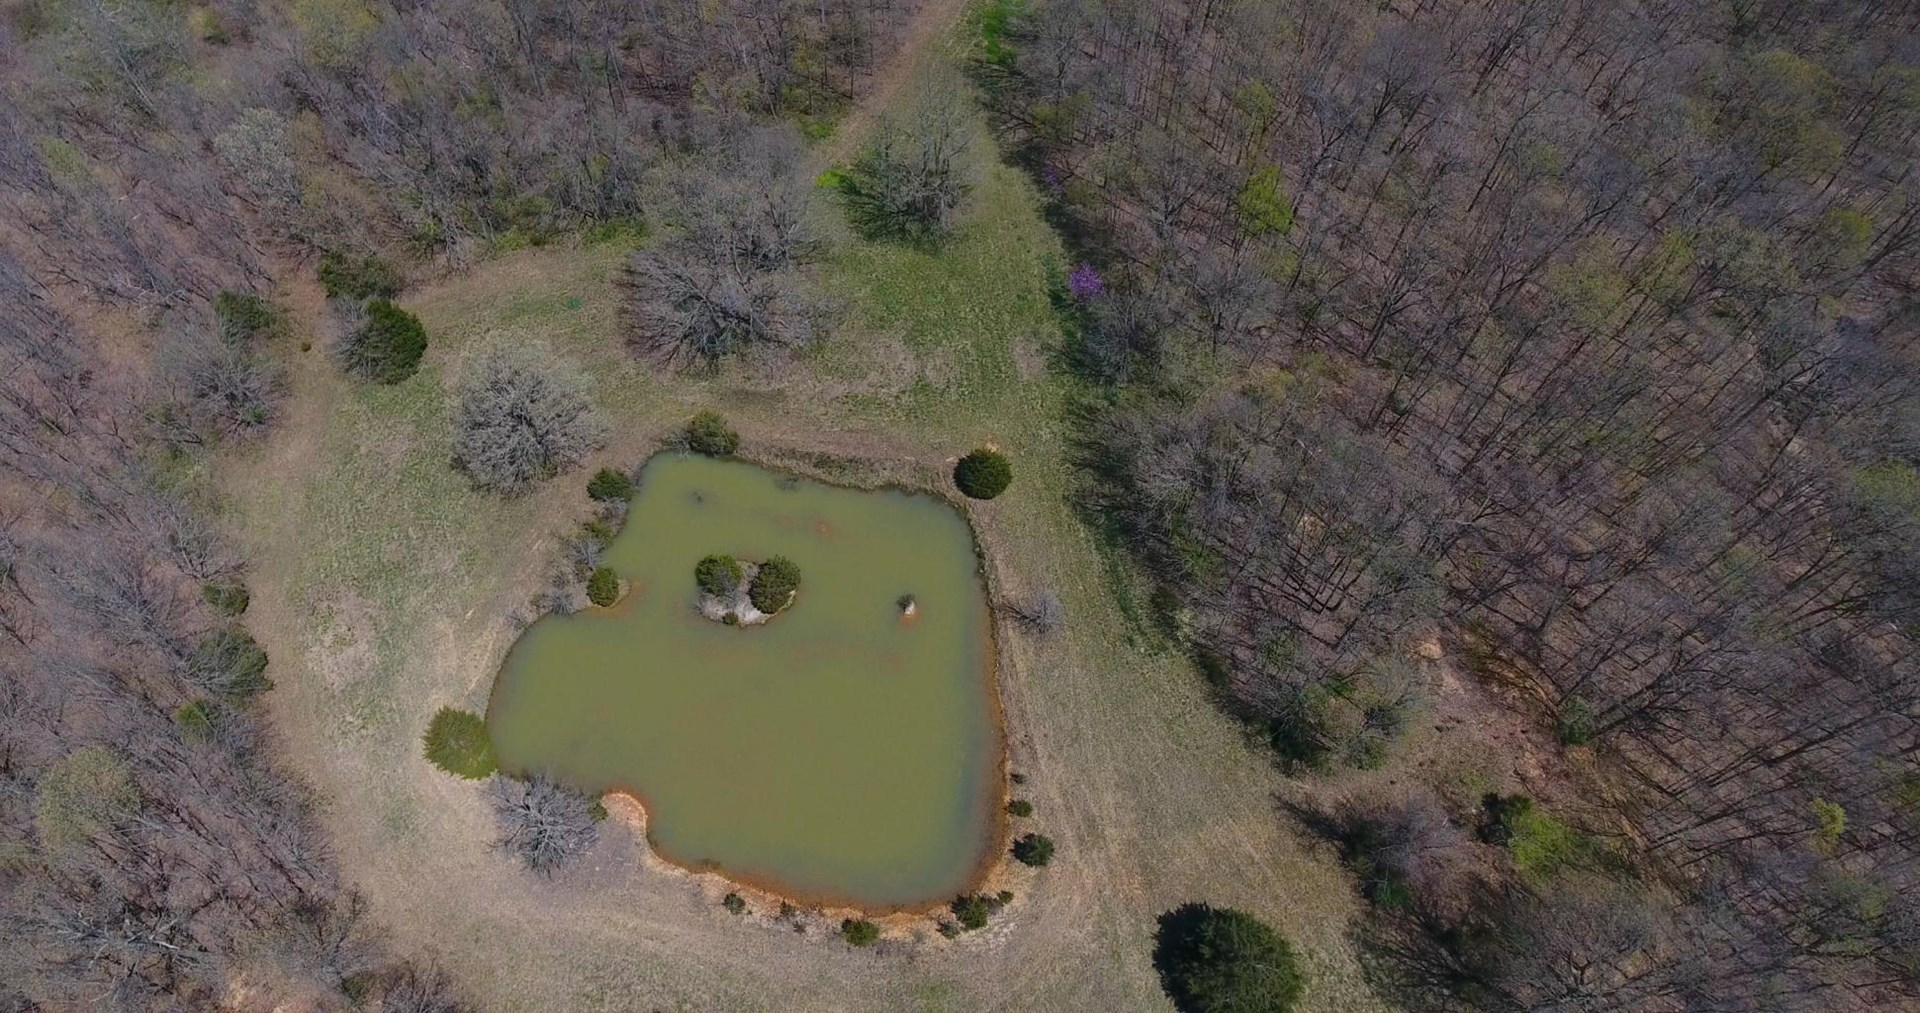 LAND FOR SALE IN MISSOURI - HUNTING LAND, FARM FOR SALE